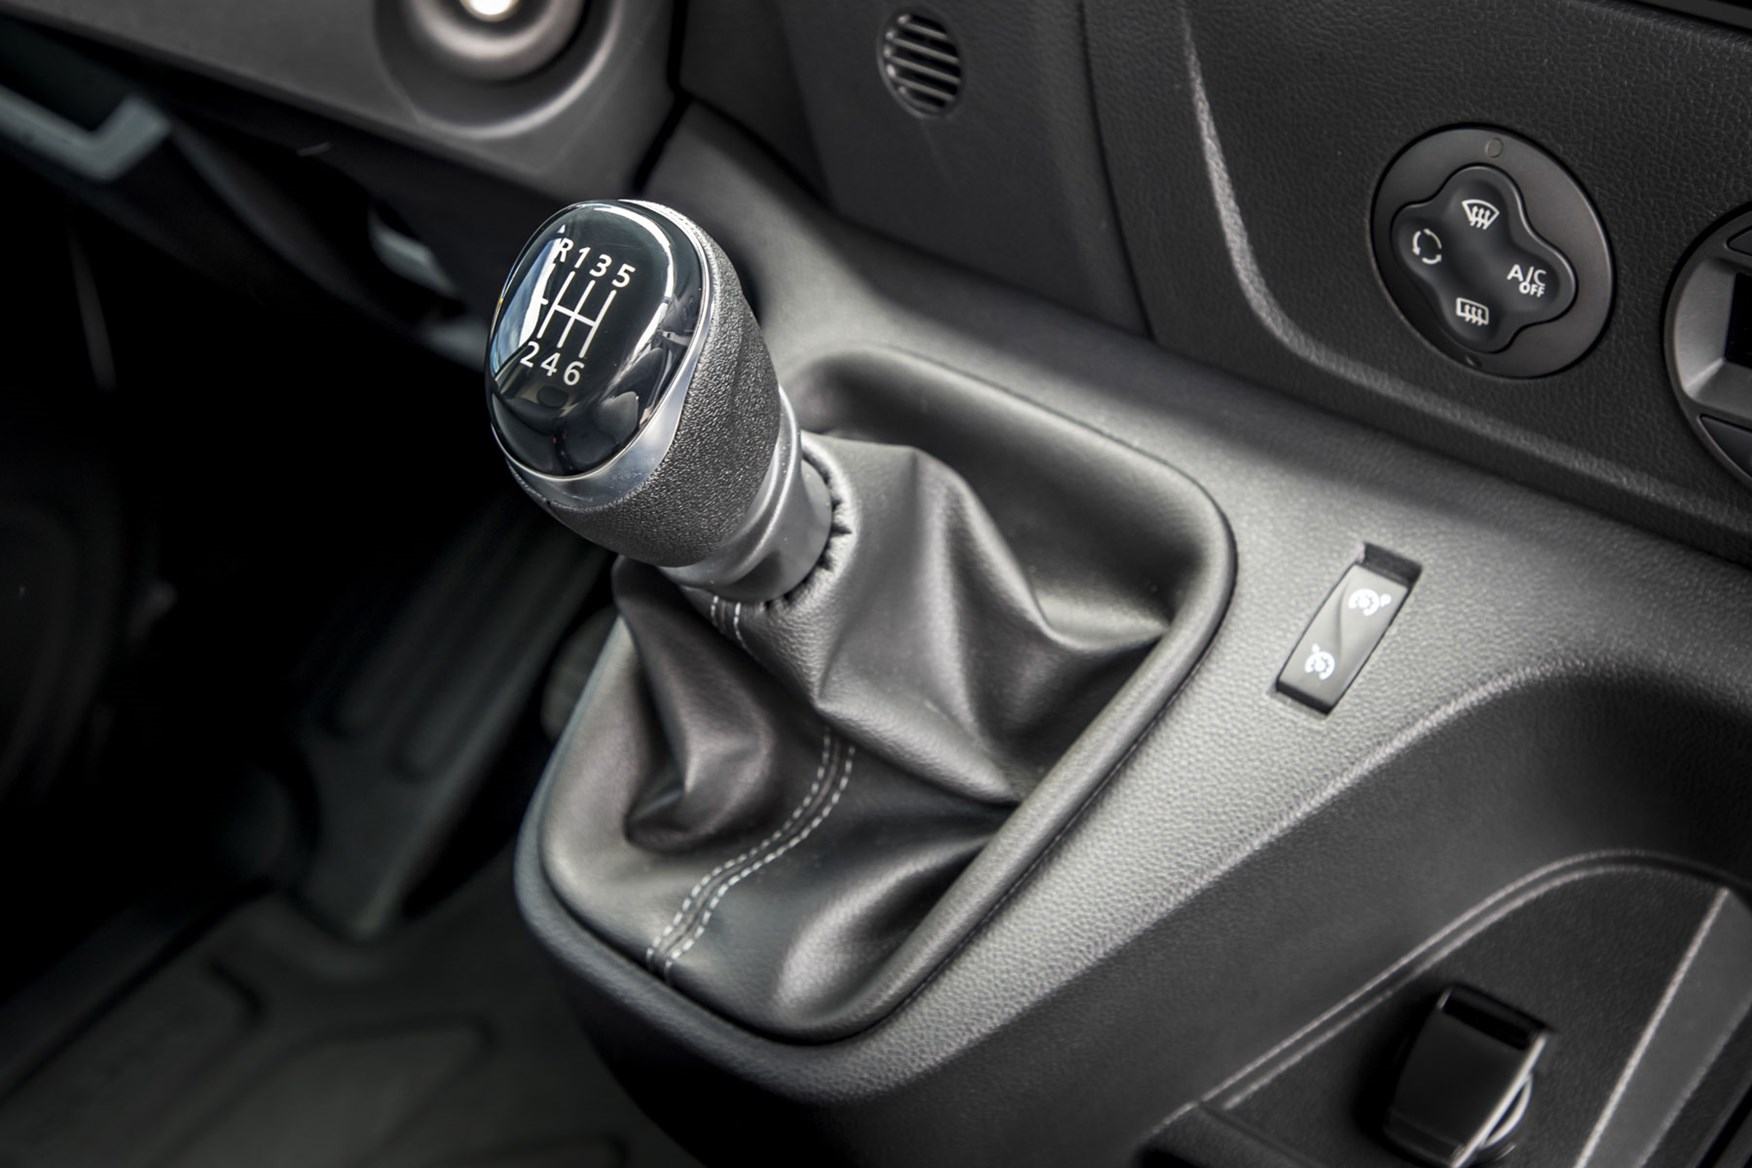 Renault Master review - 2019  facelift model, cab interior showing six-speed manual gearbox